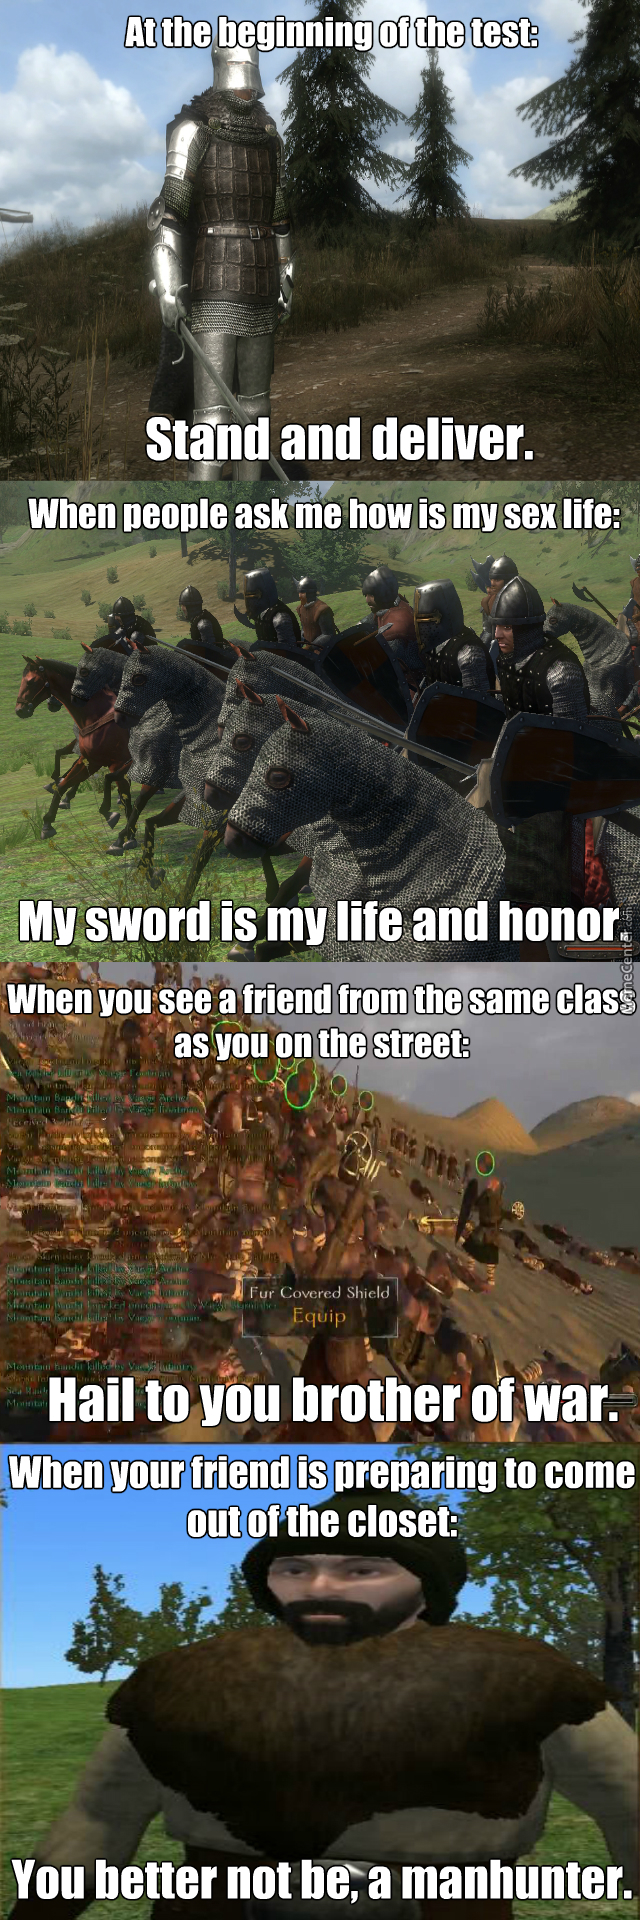 More Mount & Blade Memes, Because Fuck It.